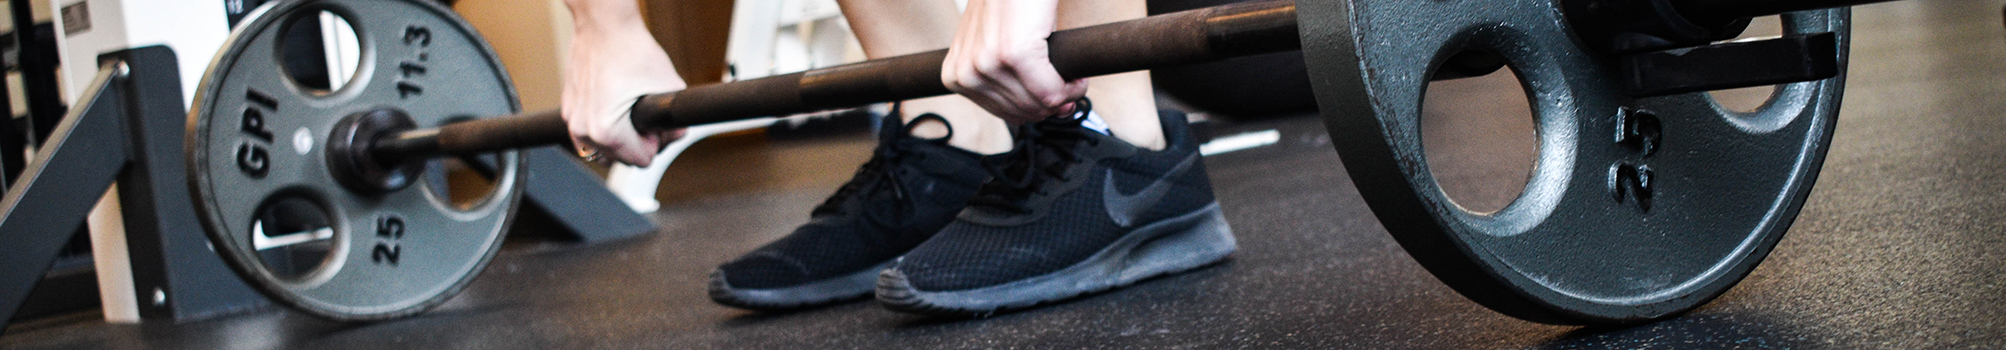 The shoes of a student is shown on the Fitness Center floor between the weights on a dumbbell before it is lifted off the floor.